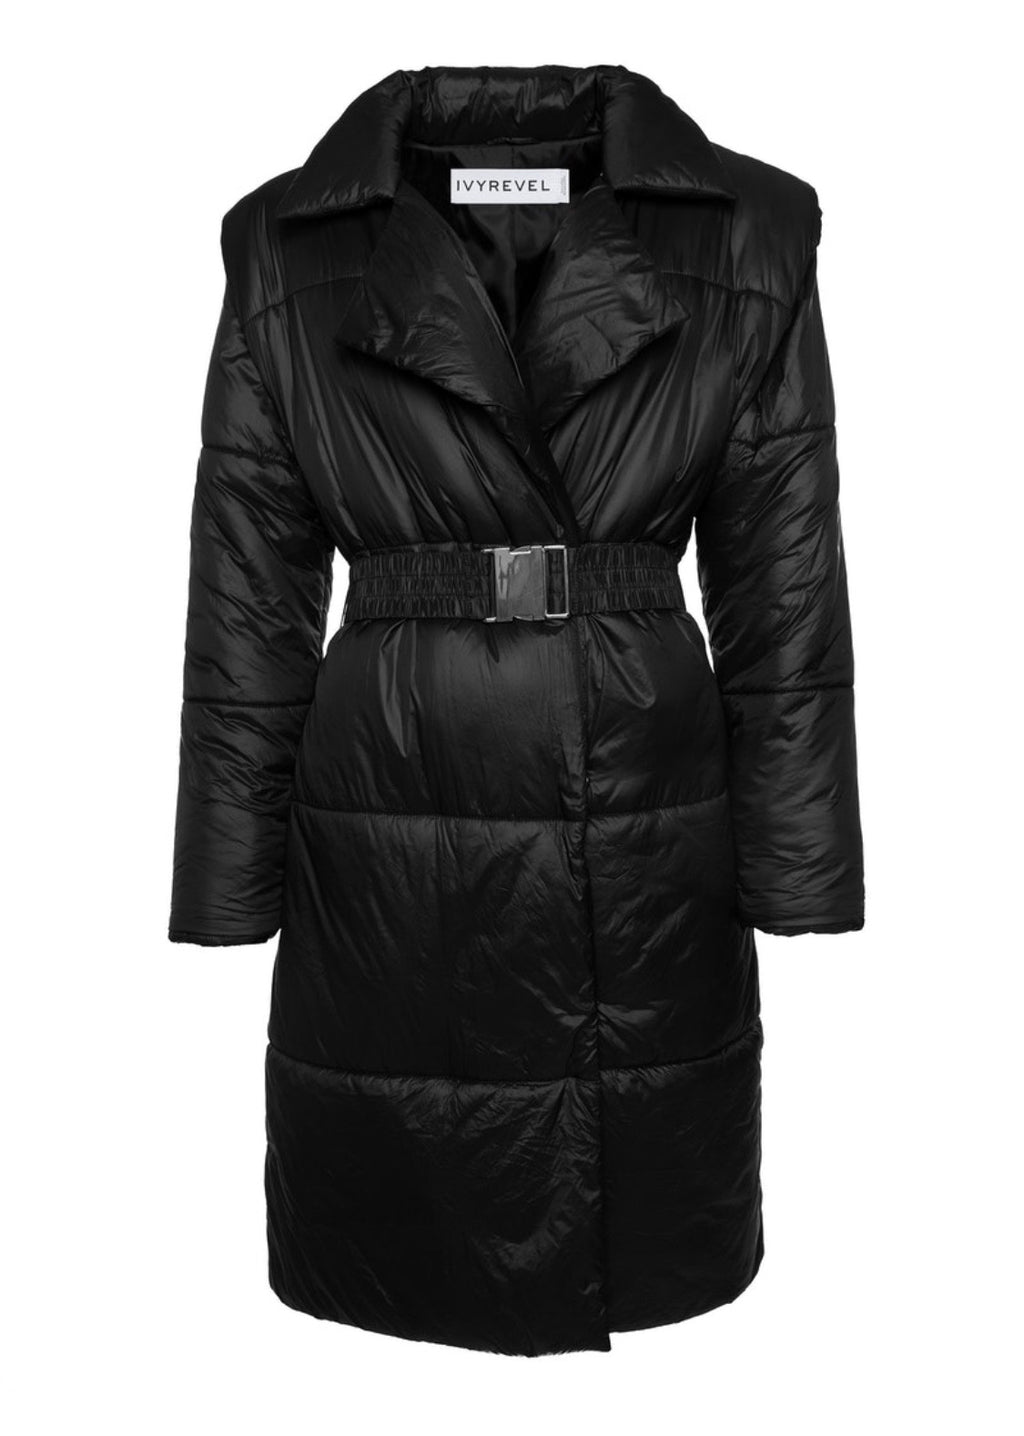 Ivyrevel Quilted Coat Black